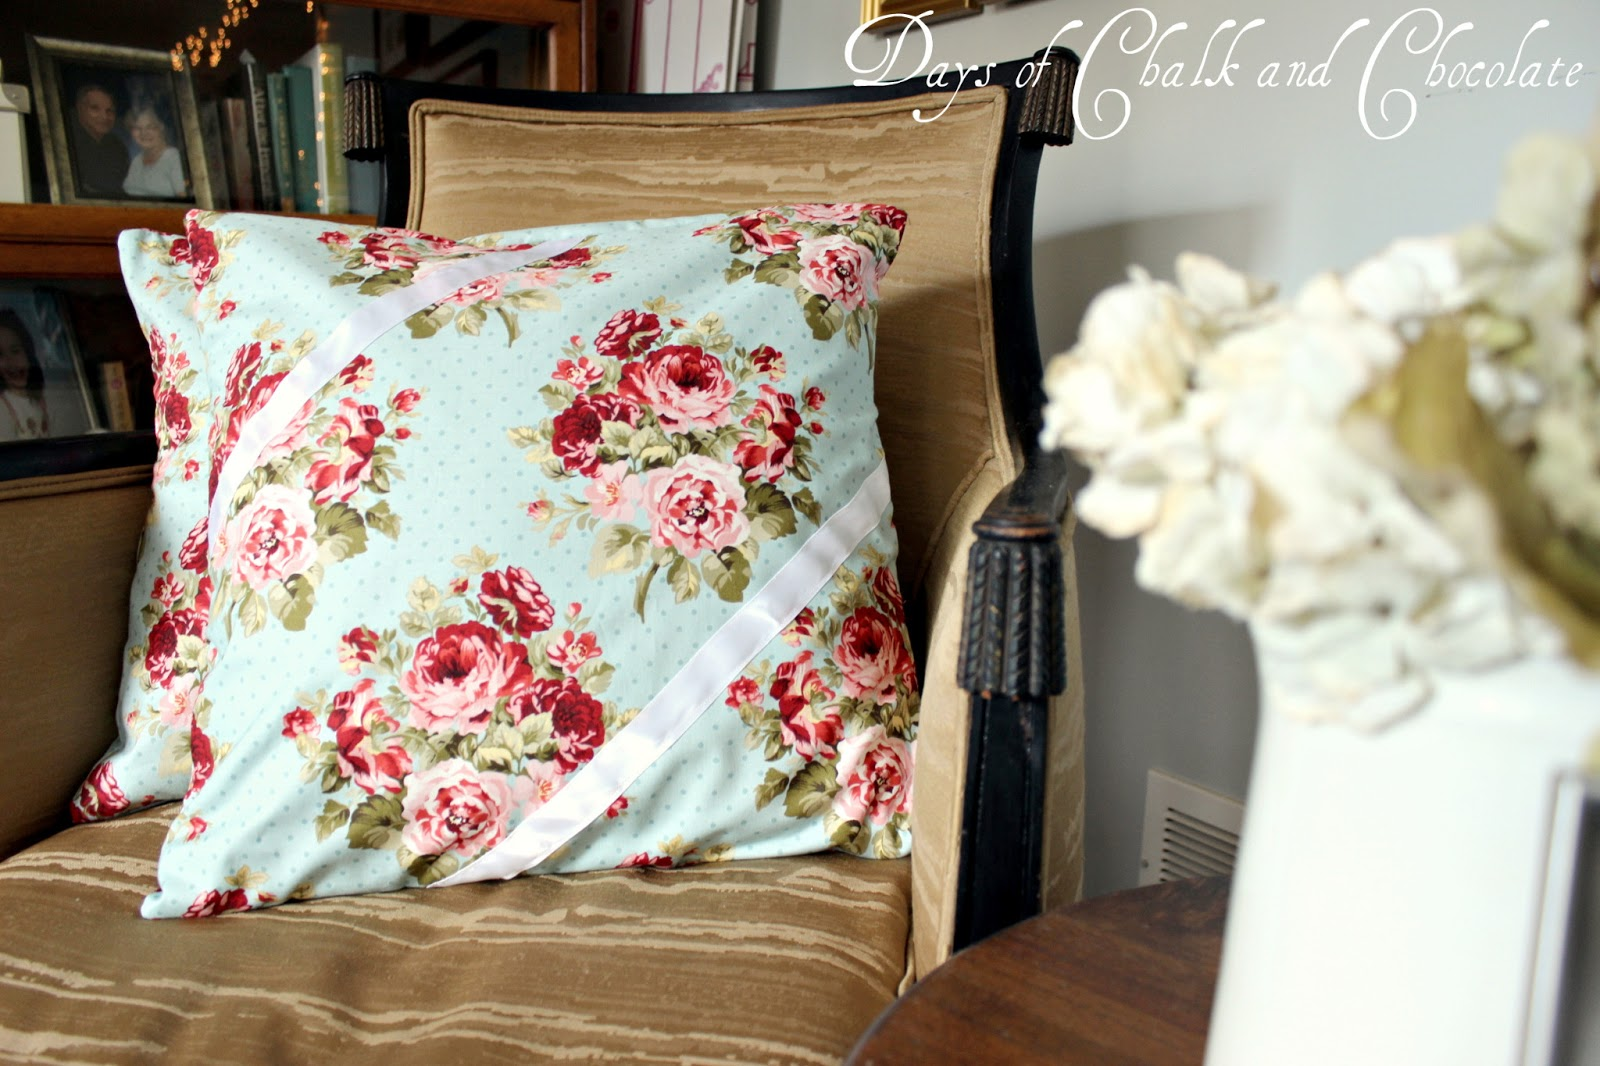 Shabby Chic Pillow Images : Shabby Chic Pillows (Simple Sewing) Days of Chalk and Chocolate